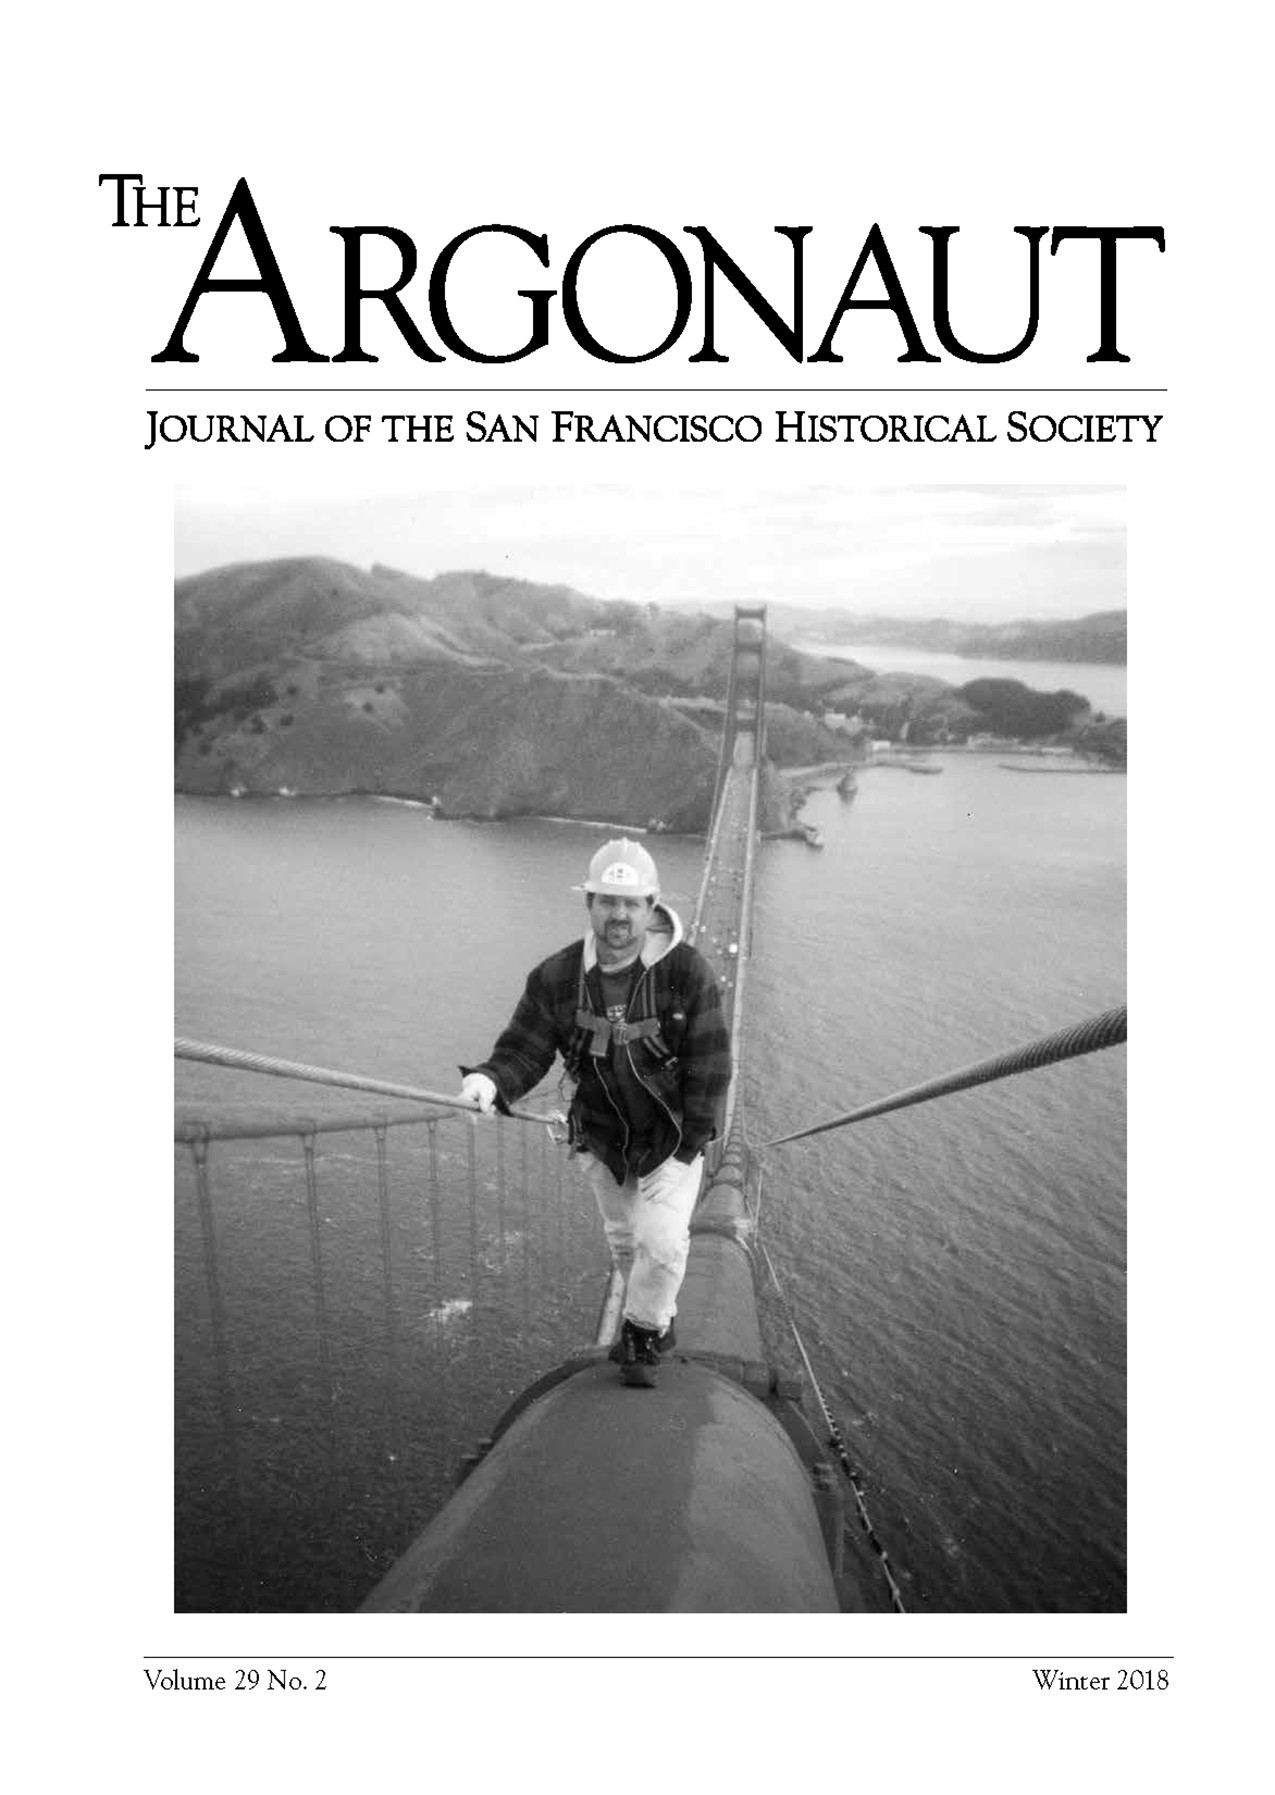 The Argonaut Jan/Feb 2019 - Cover